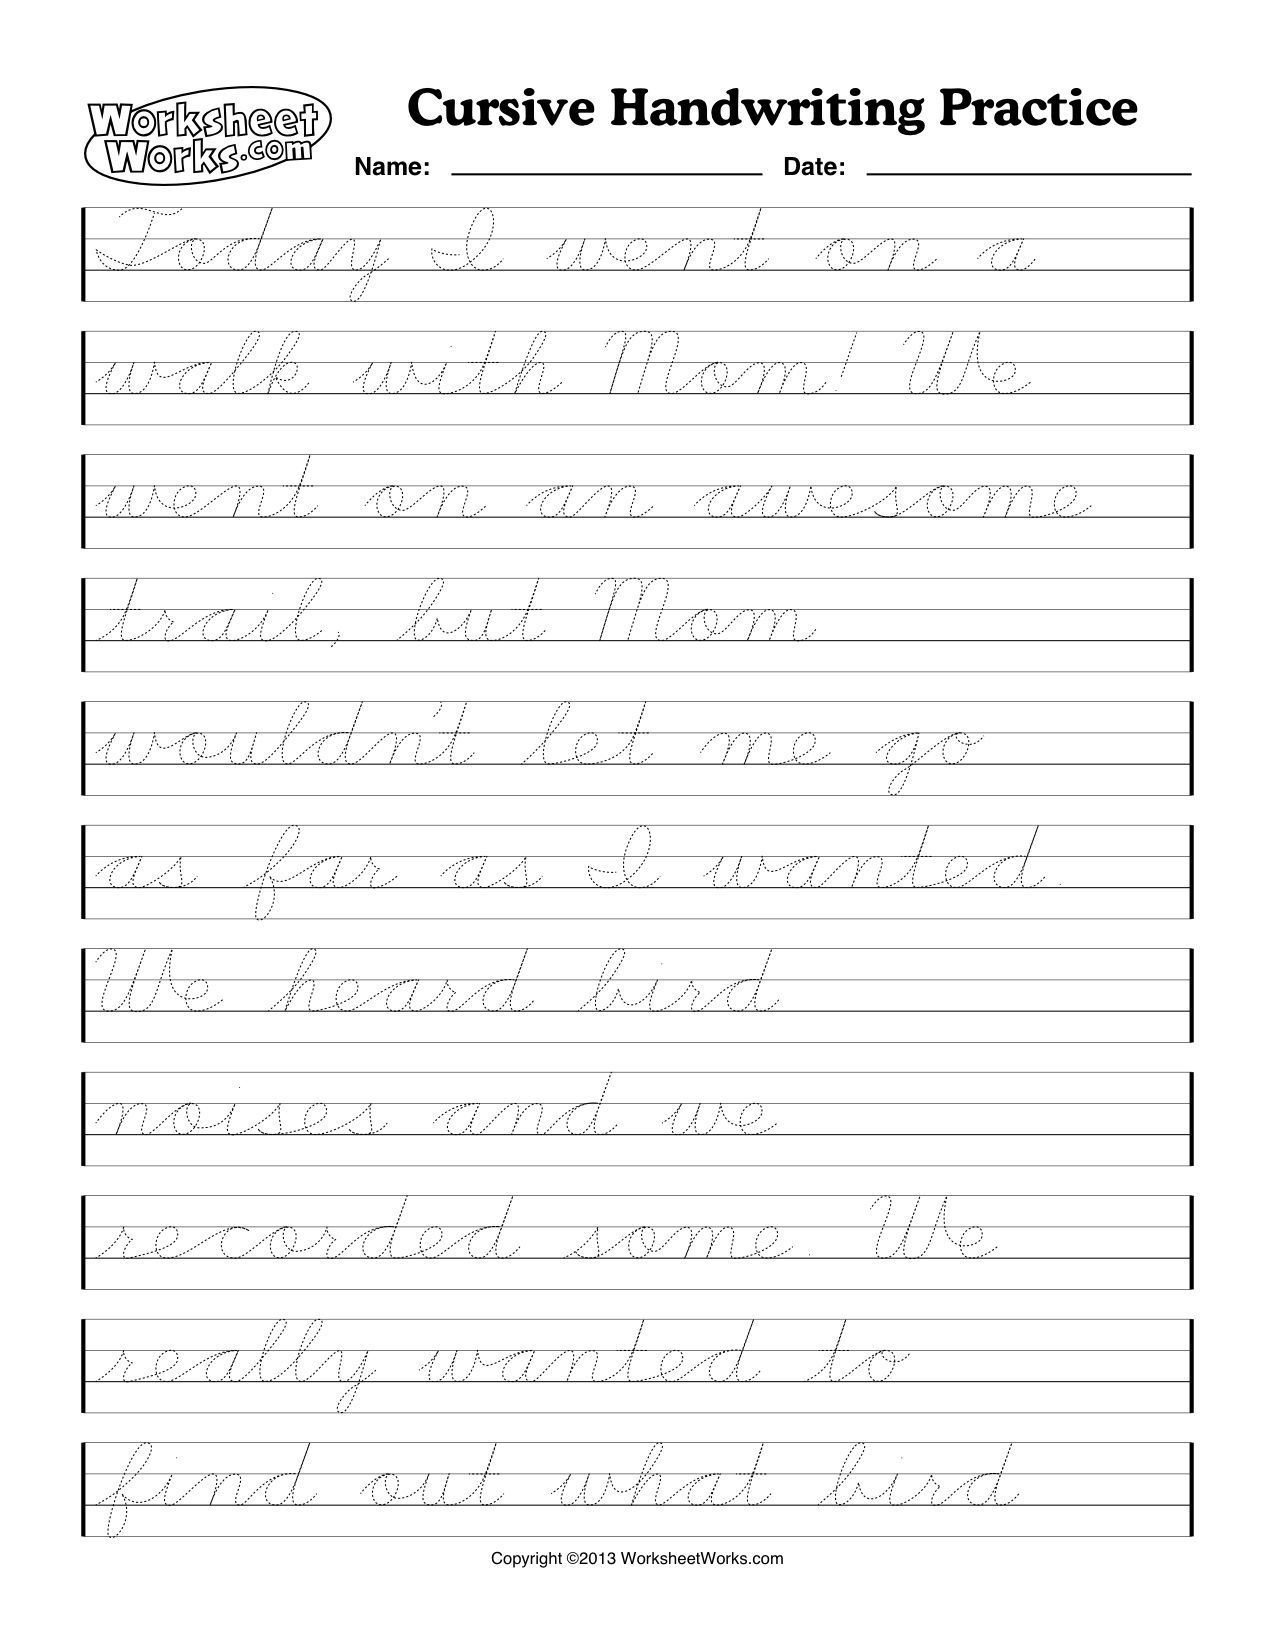 Free Handwriting Practice Worksheets Pictures Misc Free Preschool Work In 2020 Cursive Handwriting Practice Cursive Handwriting Worksheets Cursive Writing Worksheets